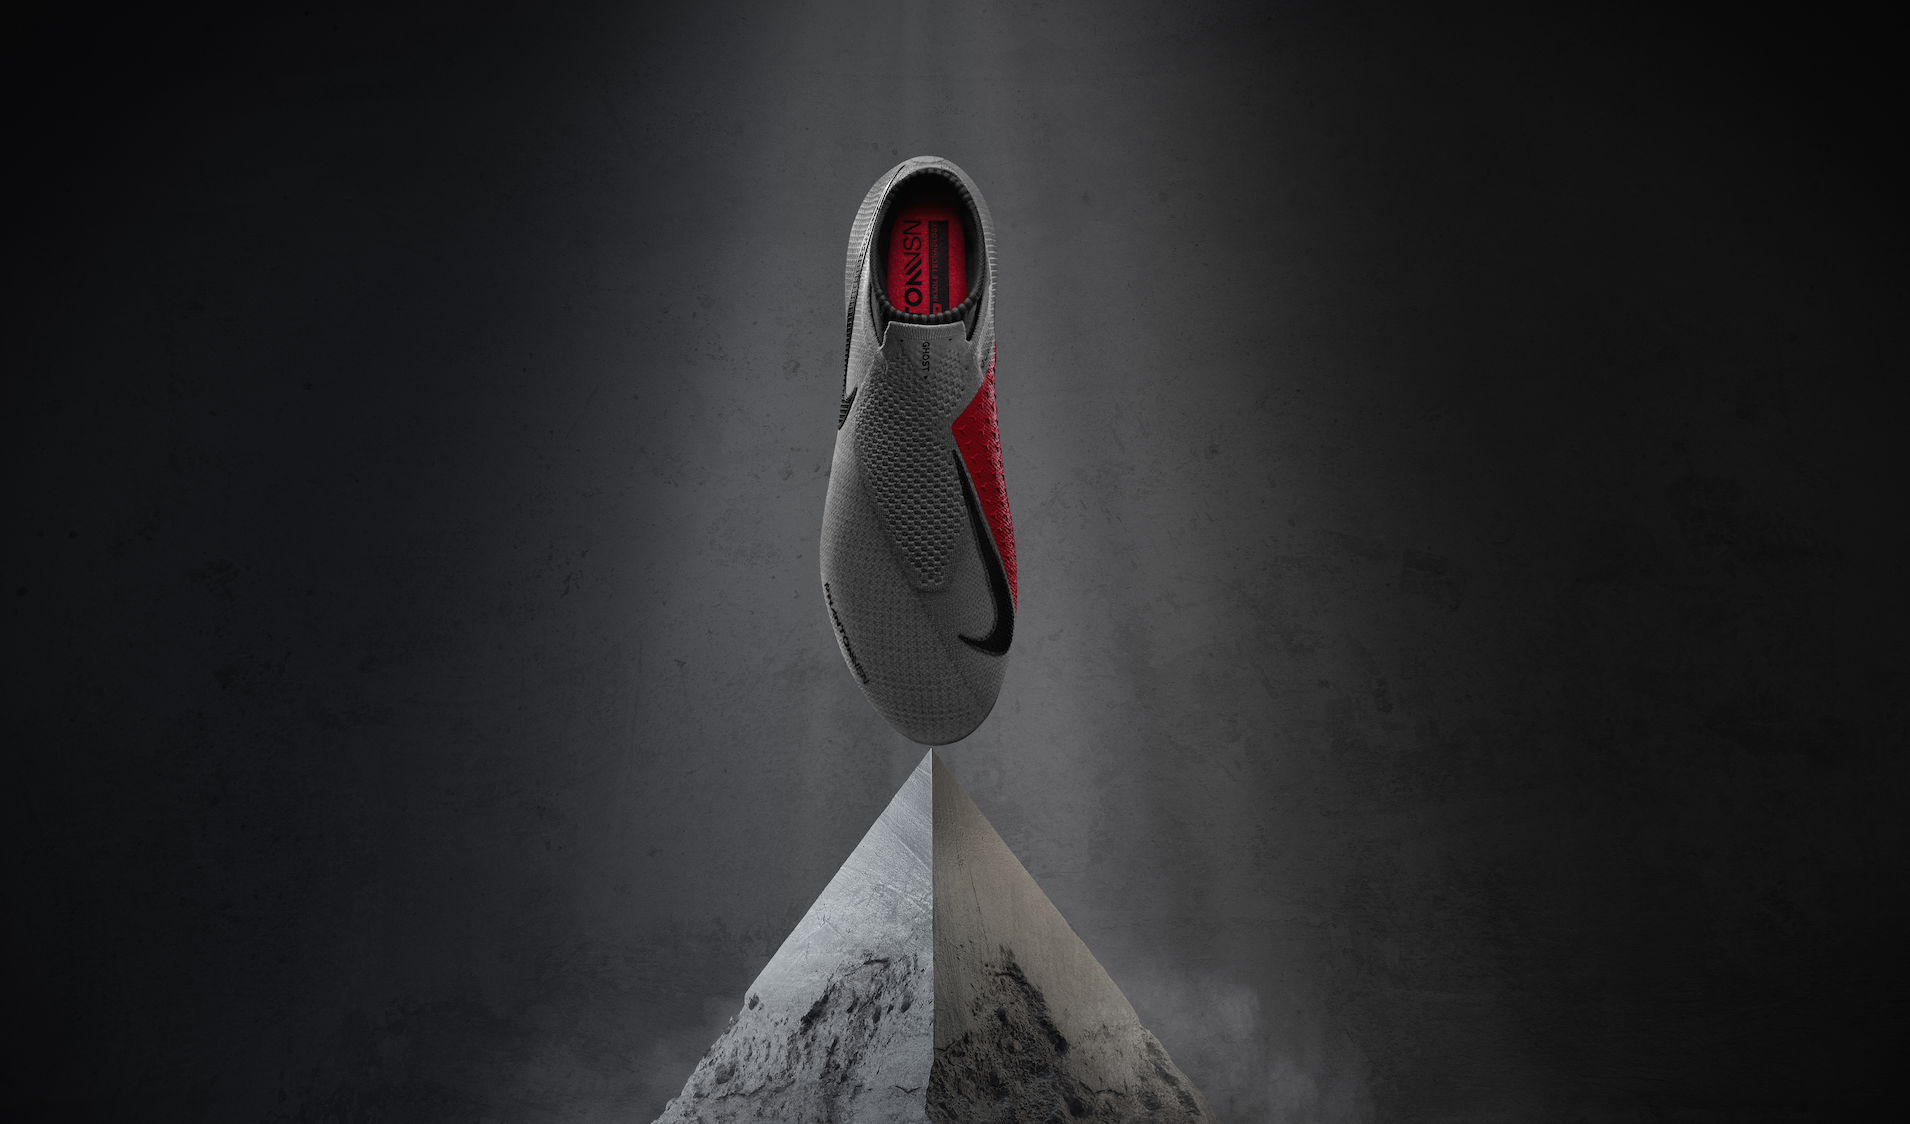 d6026e97e55 nike-football-phantomvsn. Image via Nike Football. Nike Football just  dropped an entirely new boot ...